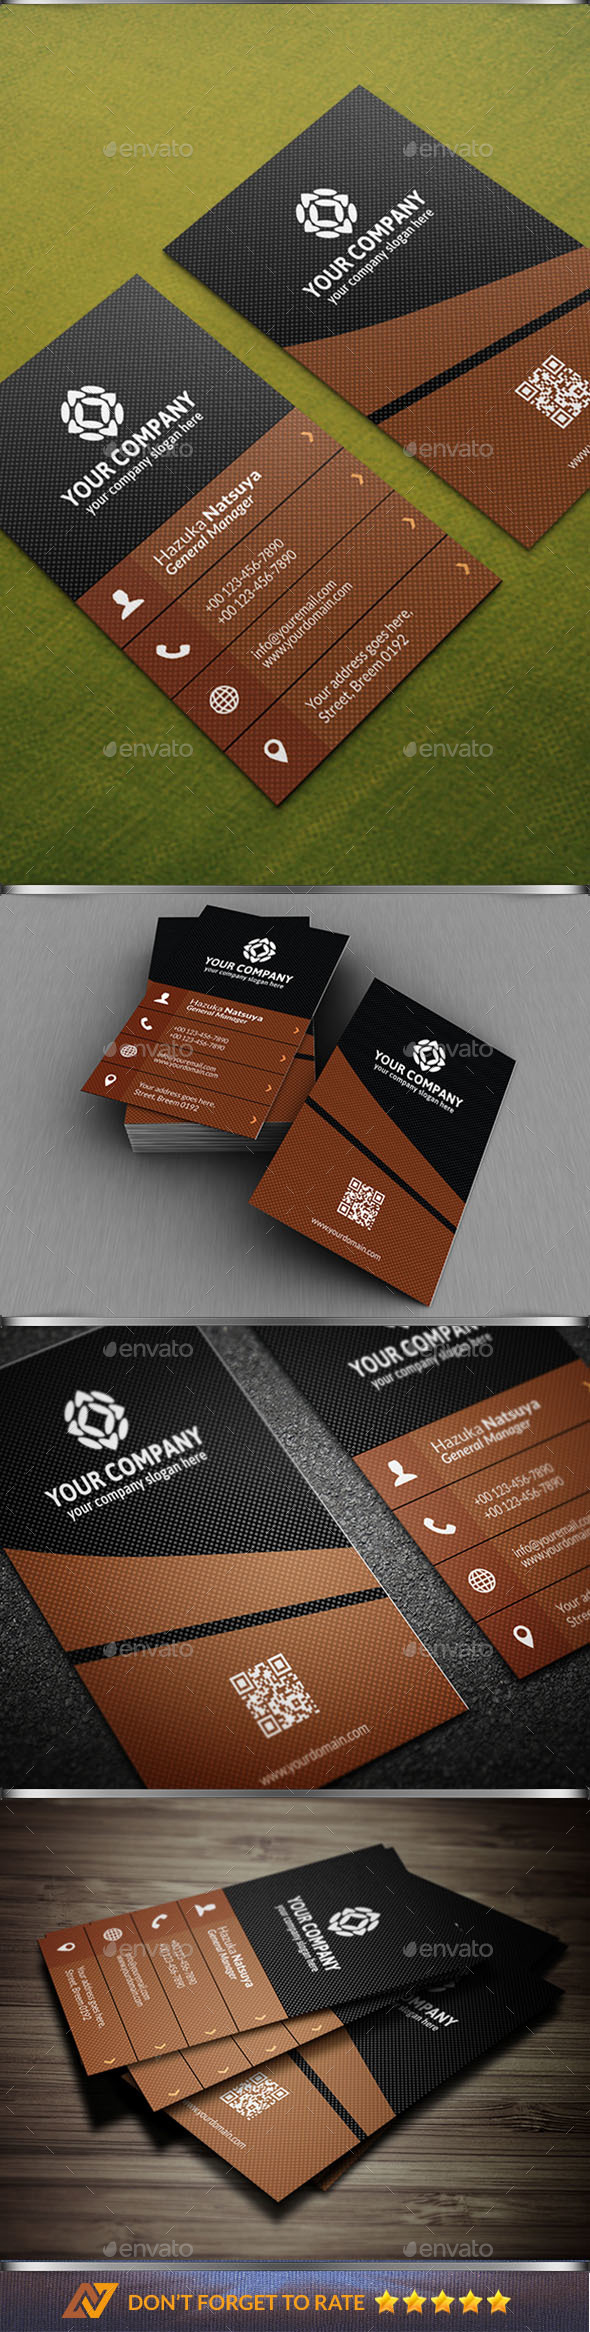 Modern Corporate Business Card Vol. 3 - Business Cards Print Templates